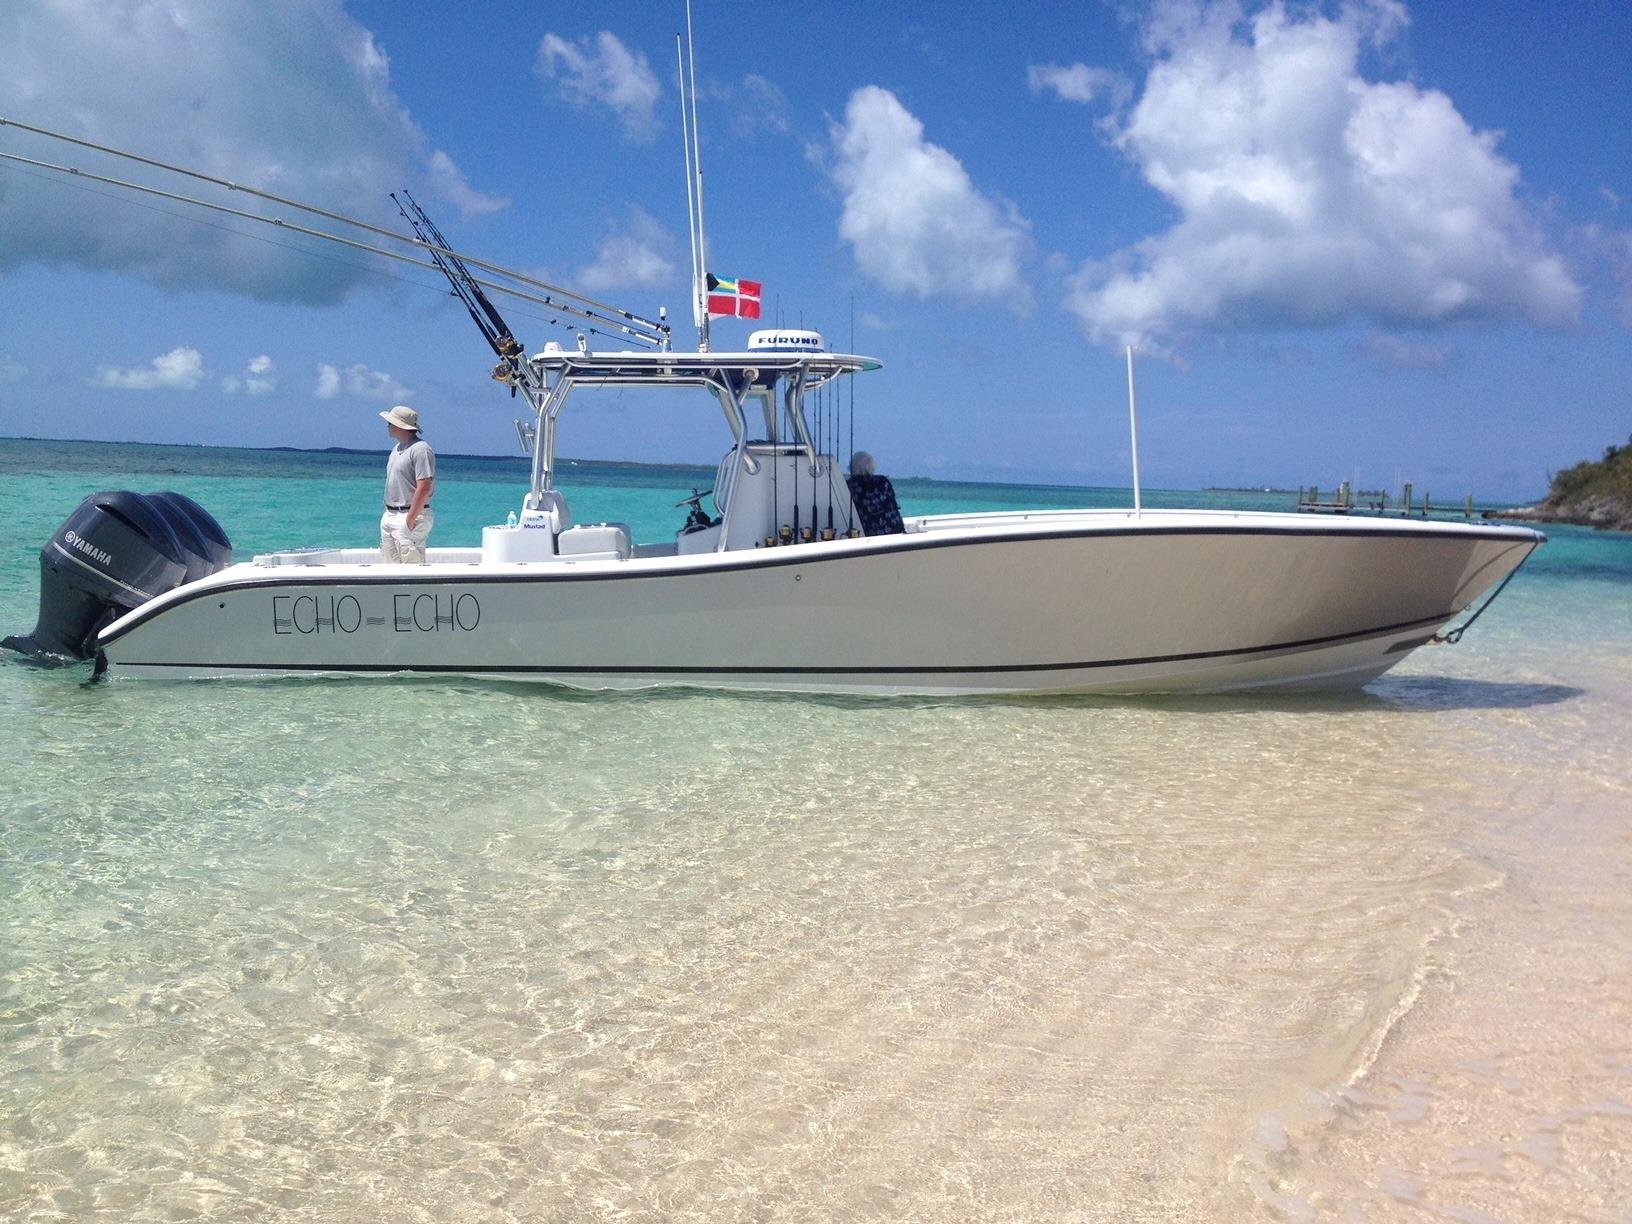 2013 Yellowfin 36 Offshore WHELM MASTER Power Boat For Sale Wwwyachtworldcom